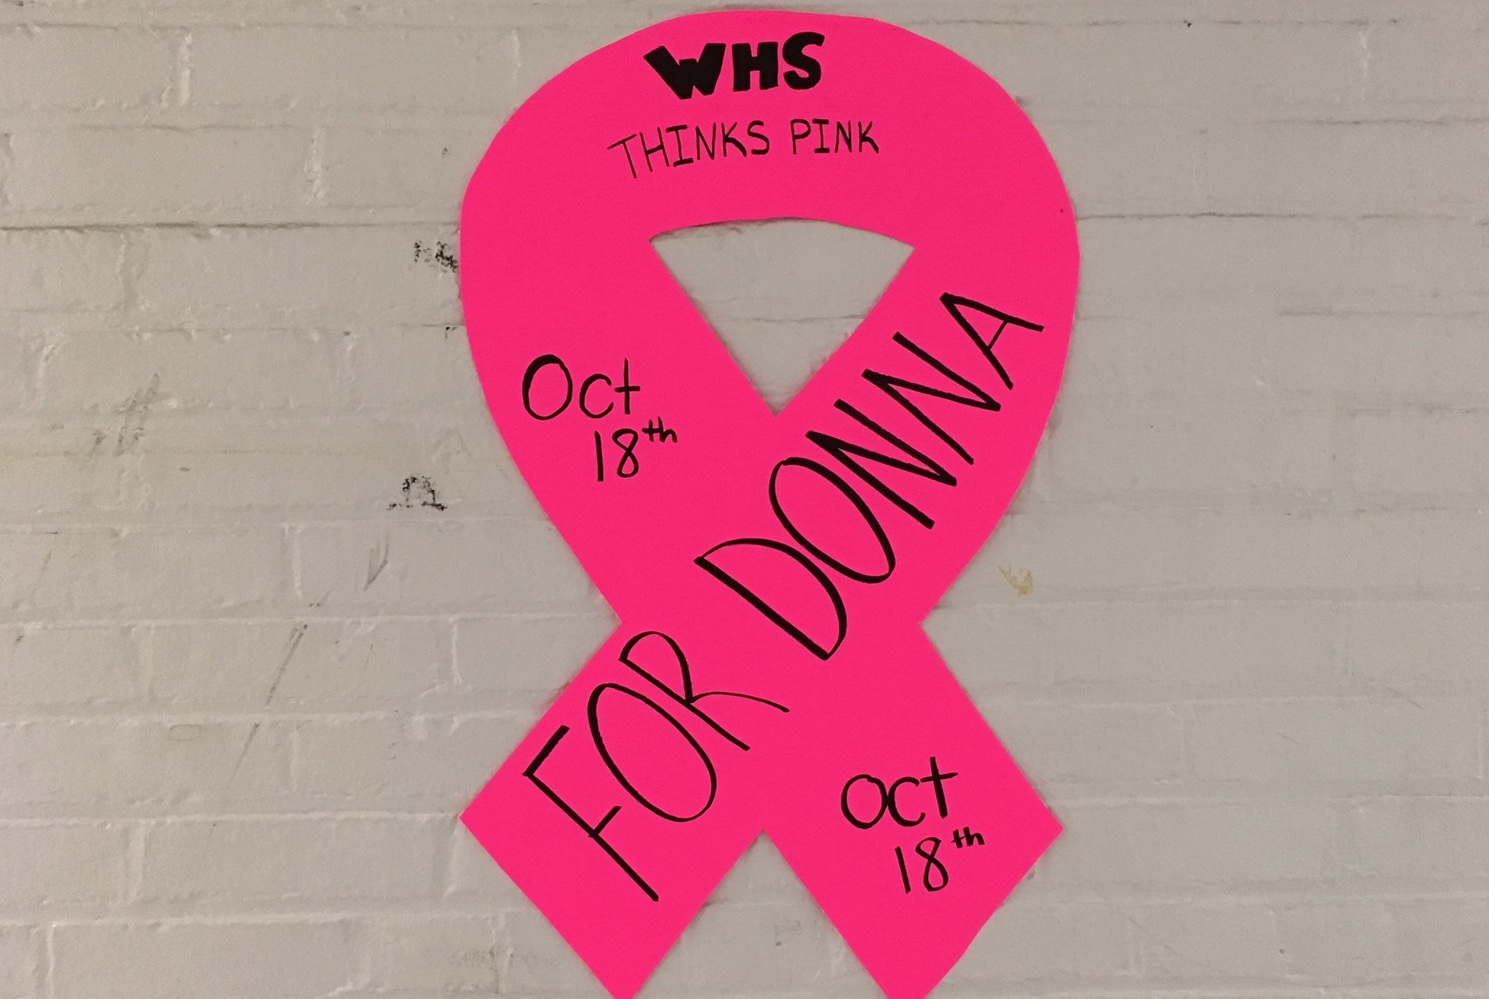 One of the posters promoting the Think Pink activities at Watertown High School during Homecoming Week, being Oct. 15, 2018.